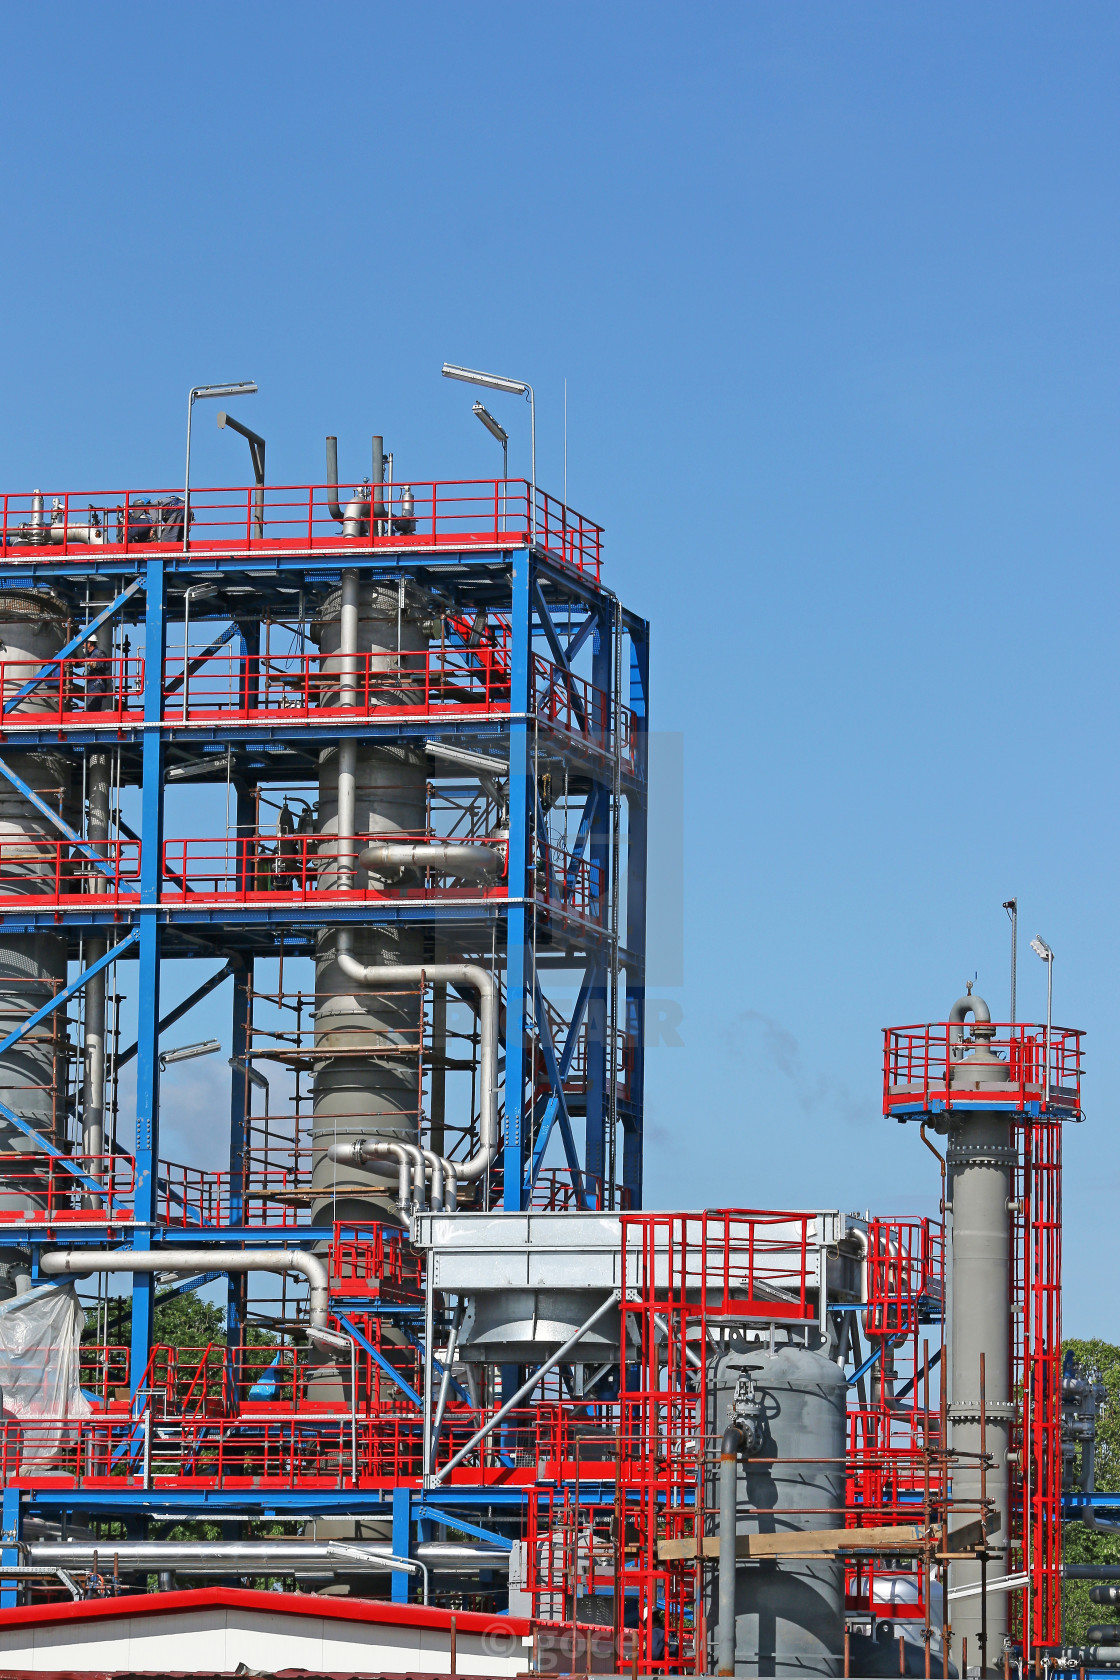 new petrochemical plant construction site - License